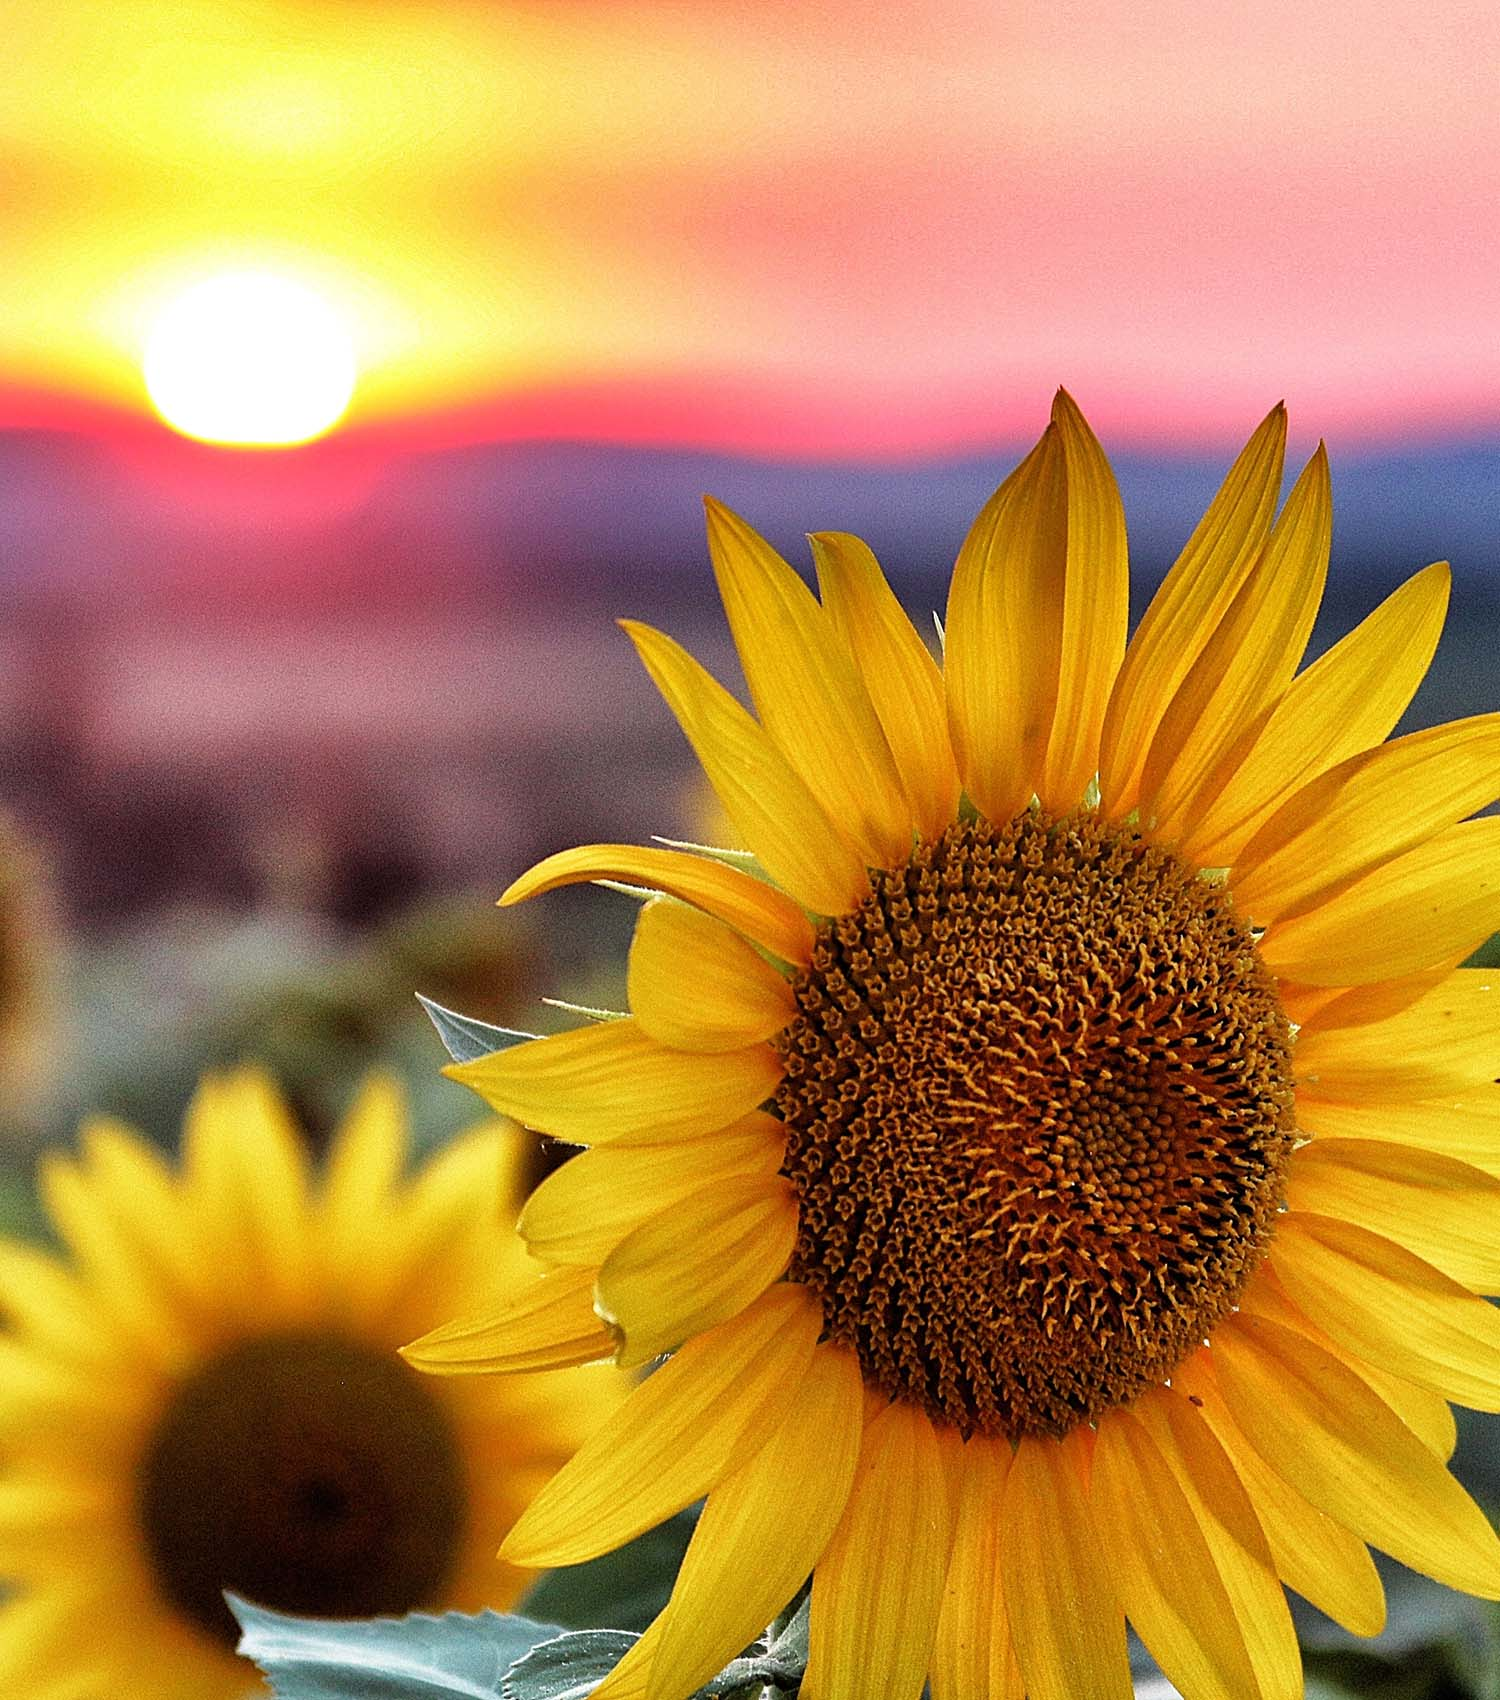 Yellow sunflowers in field for long life, good fortune and vitality